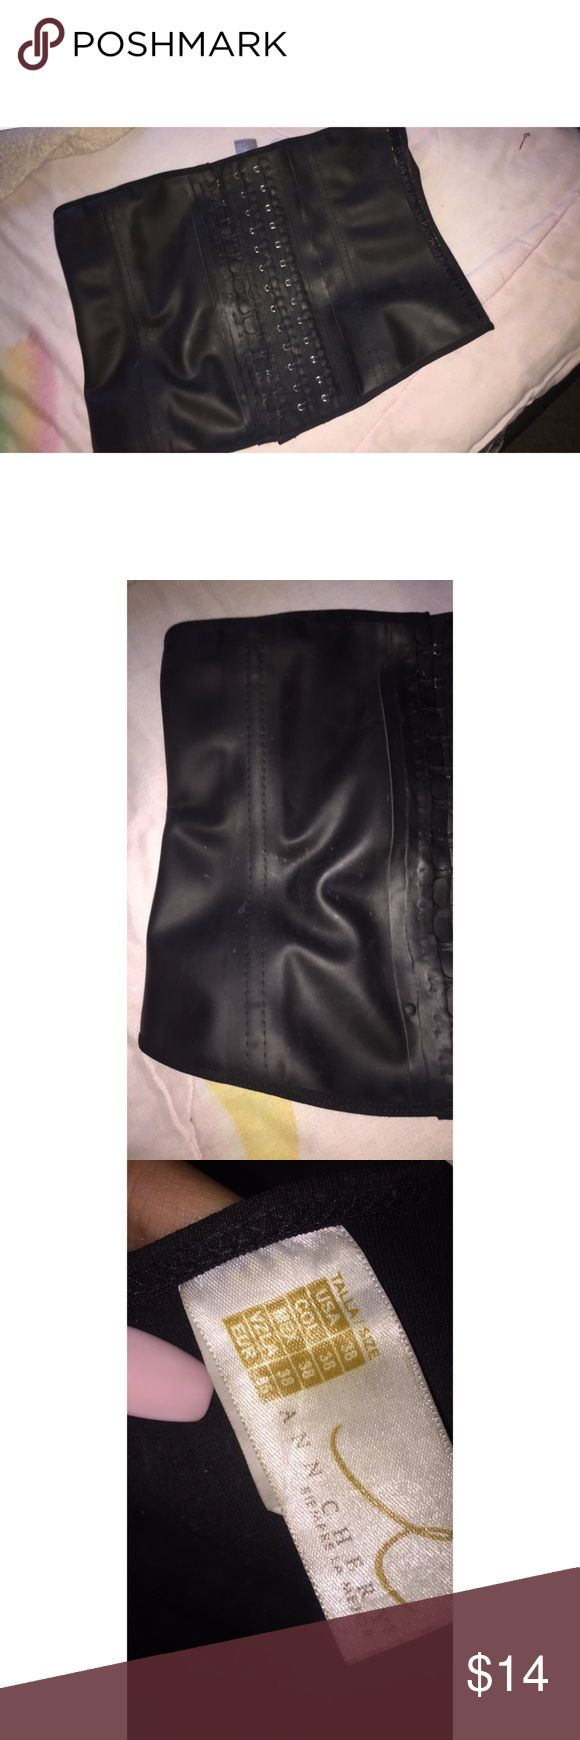 Ann chery waist trainer - used for a whole month , the waist trainer has life left unfortunately it's big on me now - it's been disinfected  - Light wear *second picture shows I was walking around my house with a crop top while waist training and got stuck to tape lol and left the small marks  - Steel bone / 100% latex / 3hooks / long torso / 38inches fits from 171 to 190 pounds  - Paid 55. Asking 14 firm. Ann Chery Other